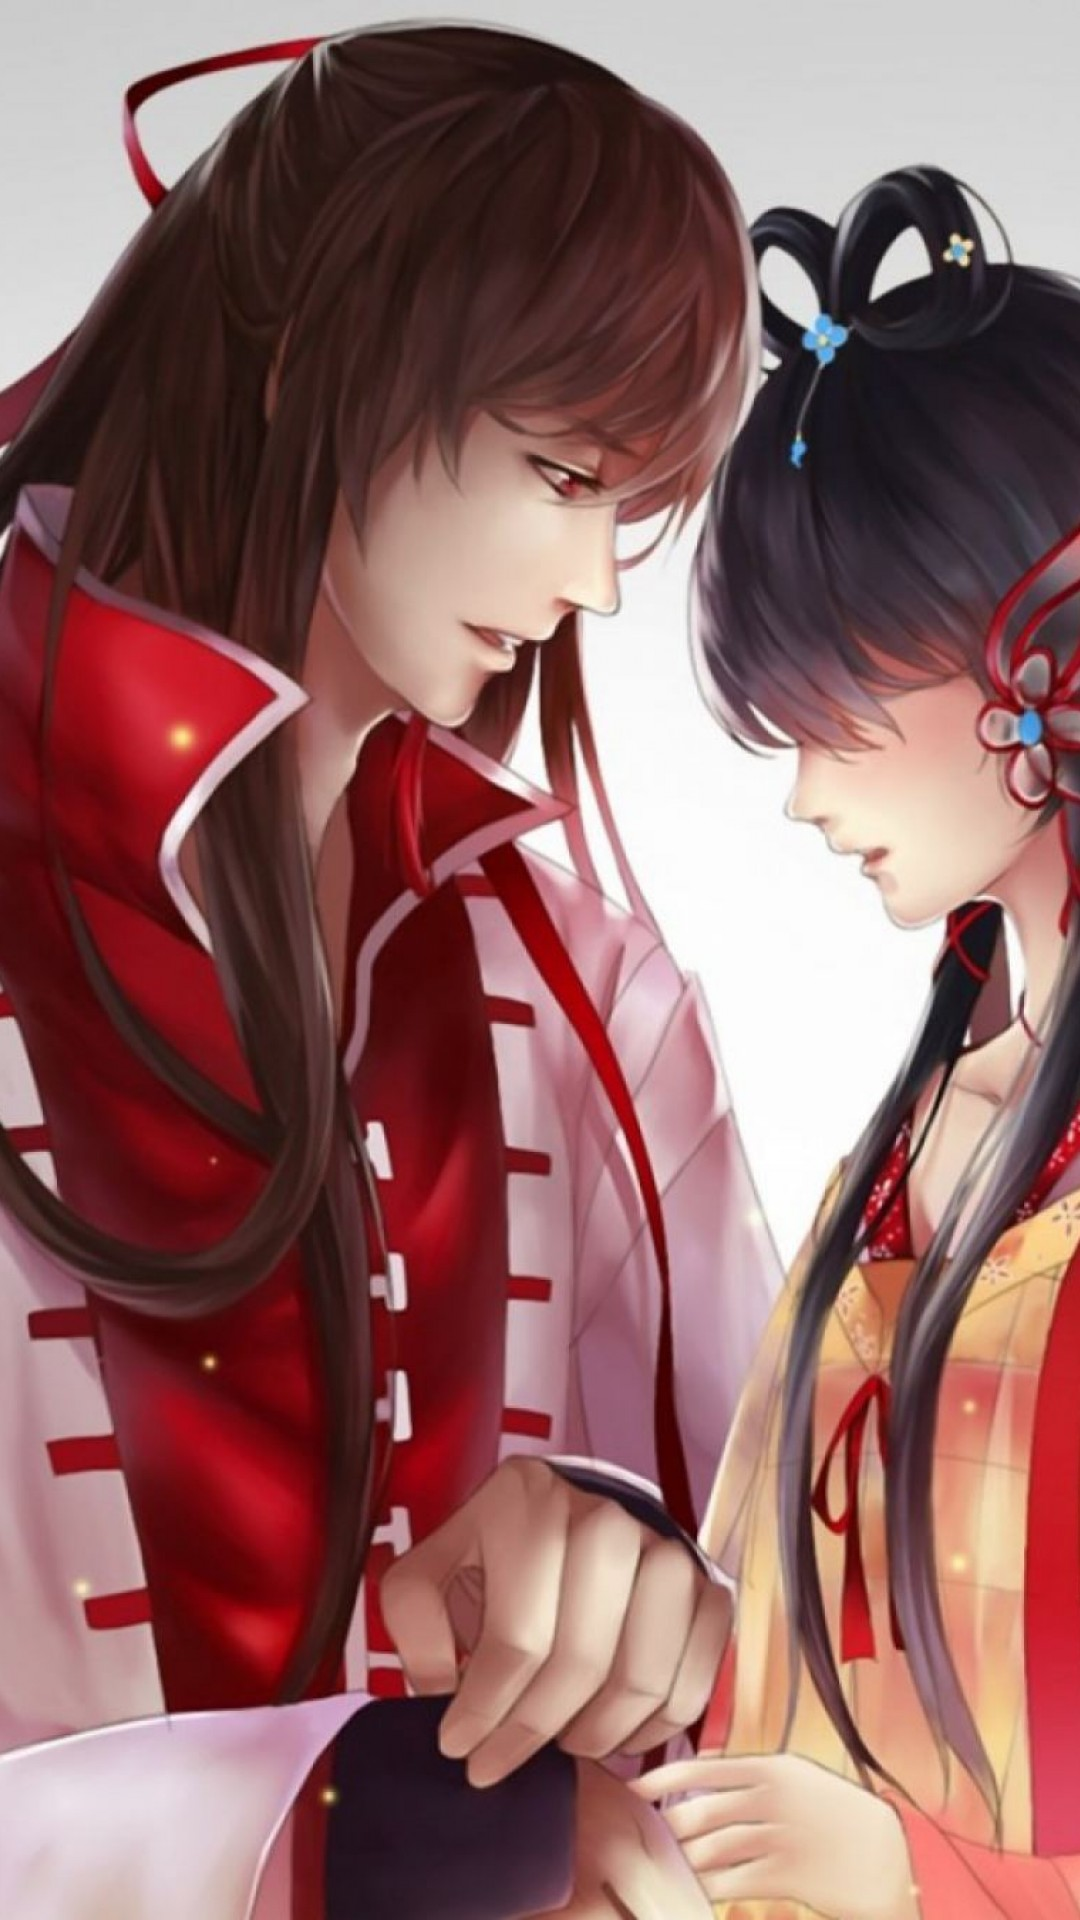 Cute Anime Couple Beautiful Hd Wallpaper For Desktop And